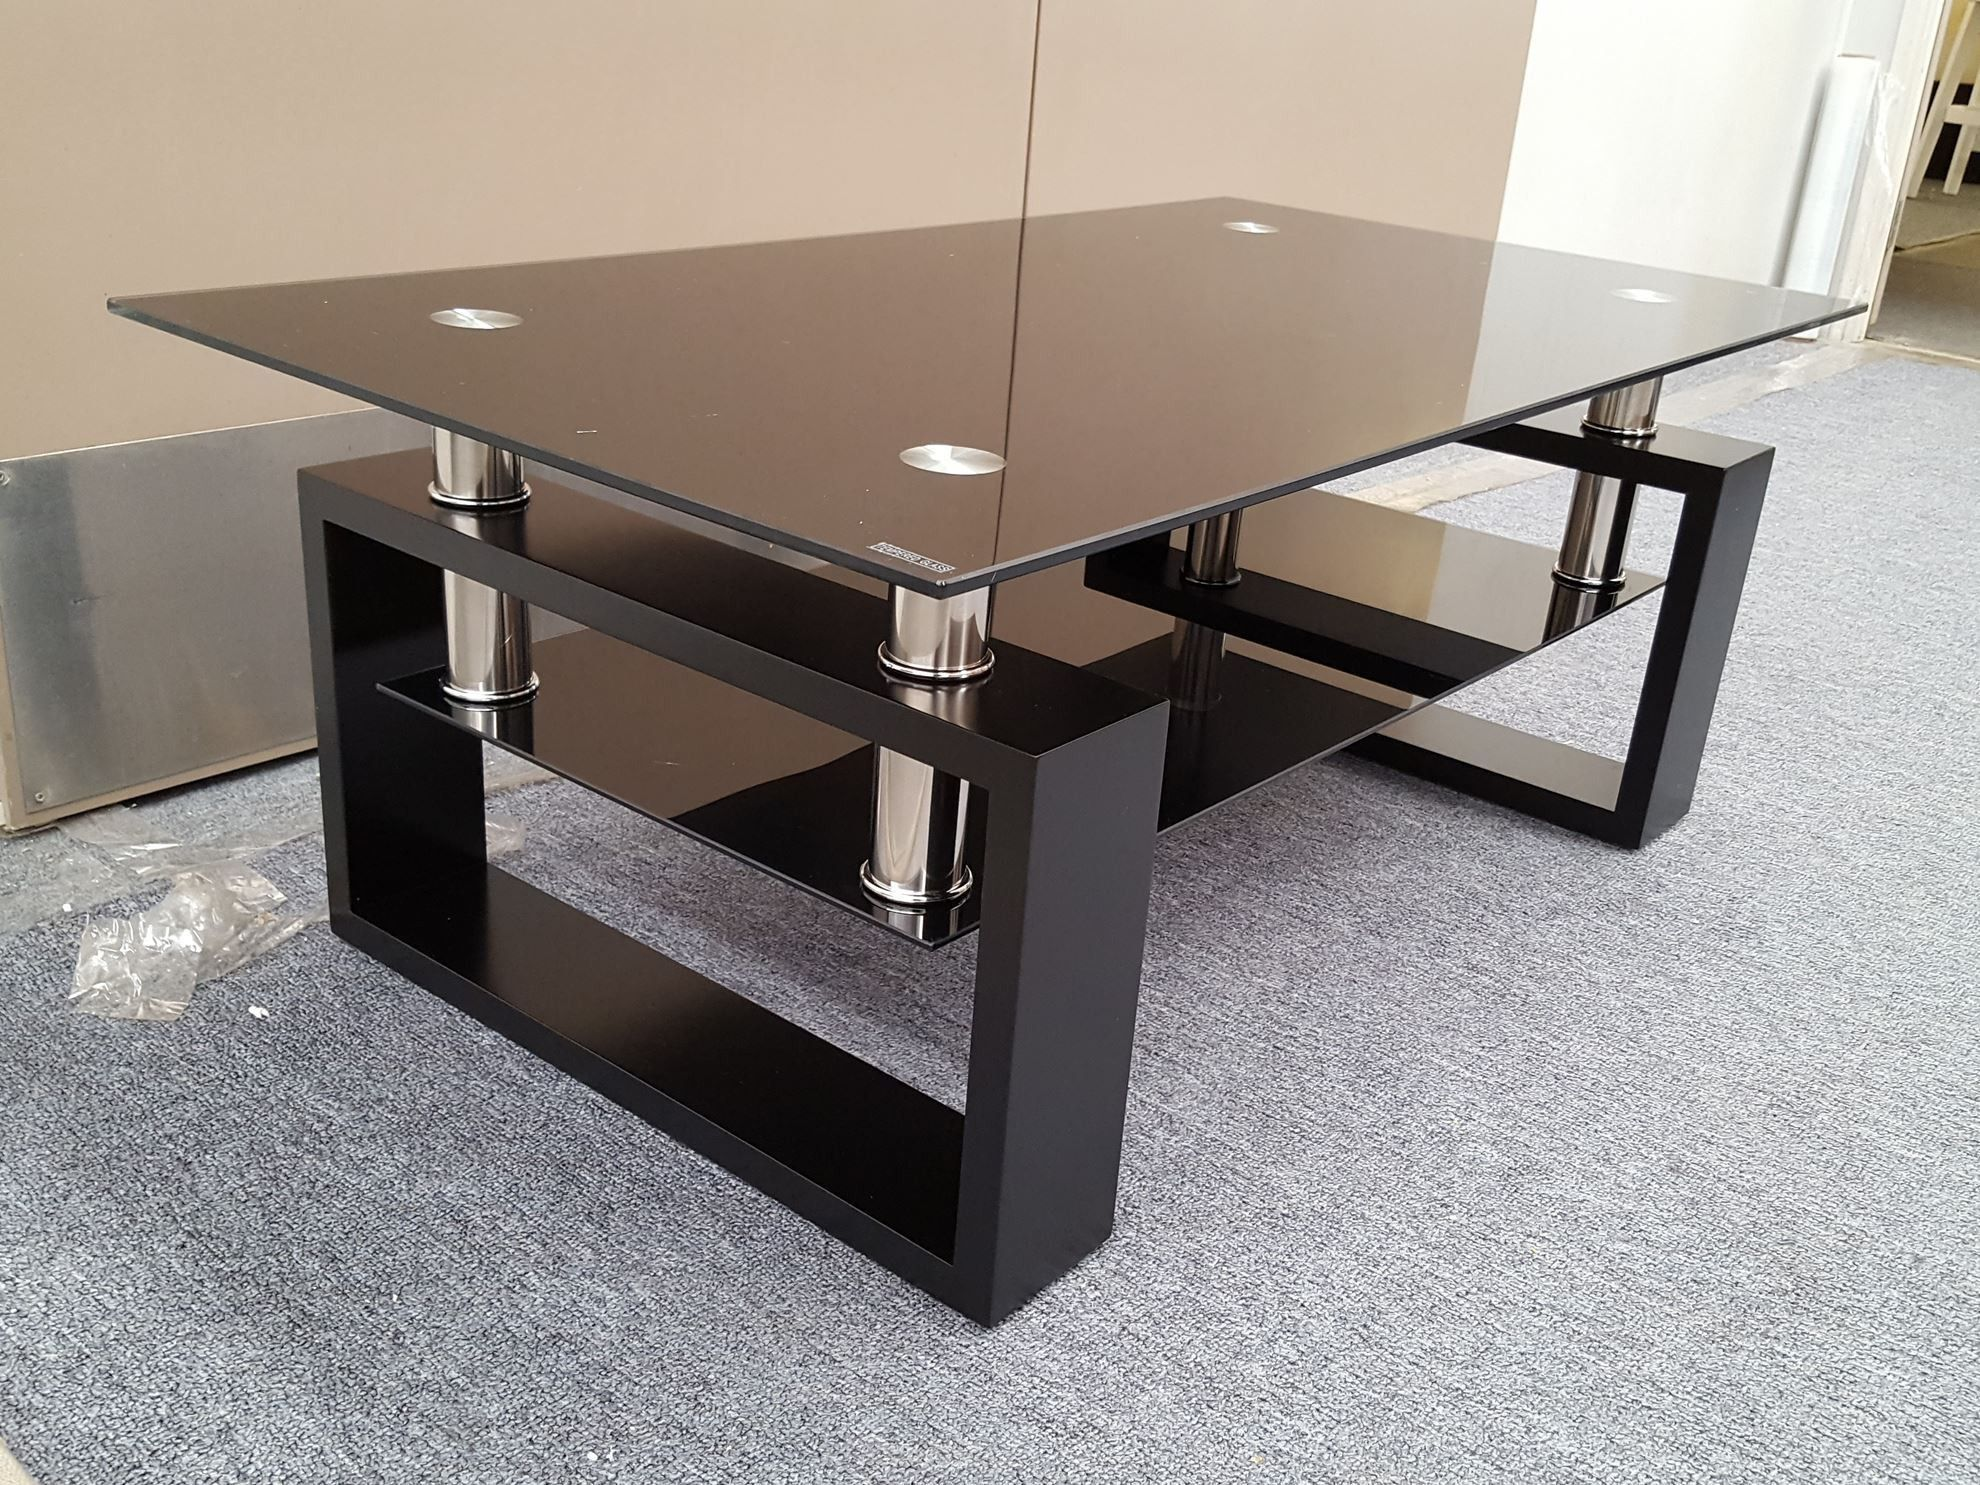 50 Black Tempered Glass Coffee Table Best Furniture Gallery